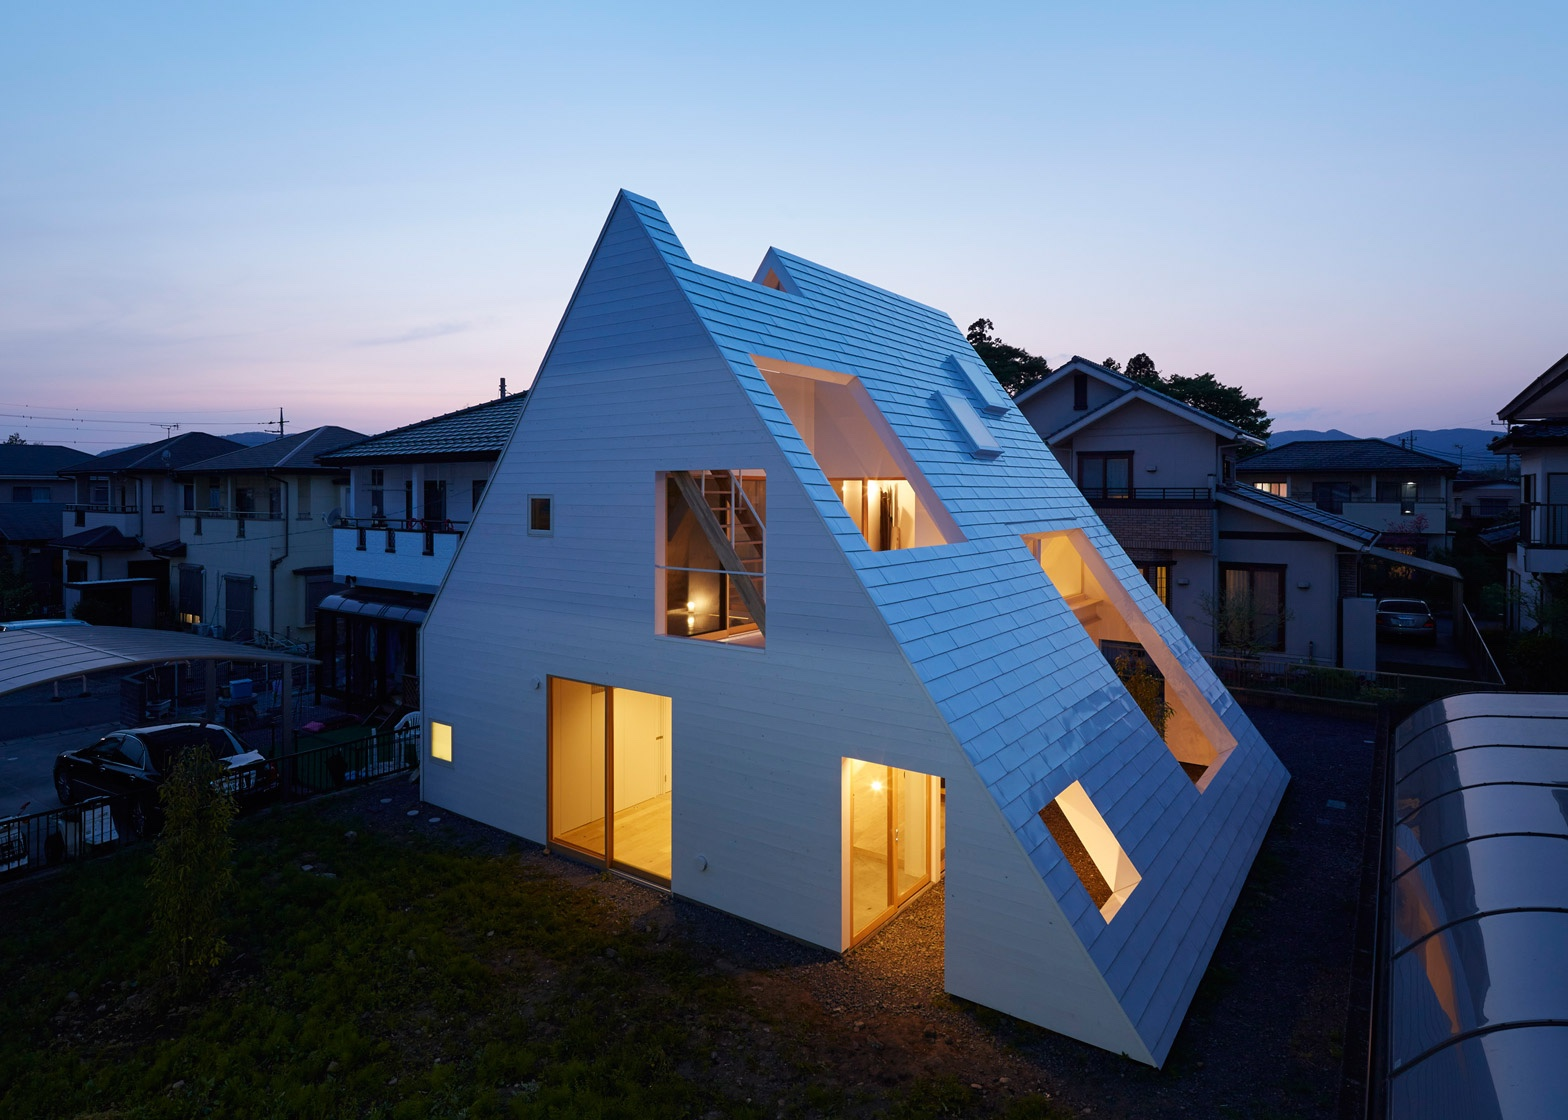 House in Utsunomiya, Tochigi Prefecture, Japan.